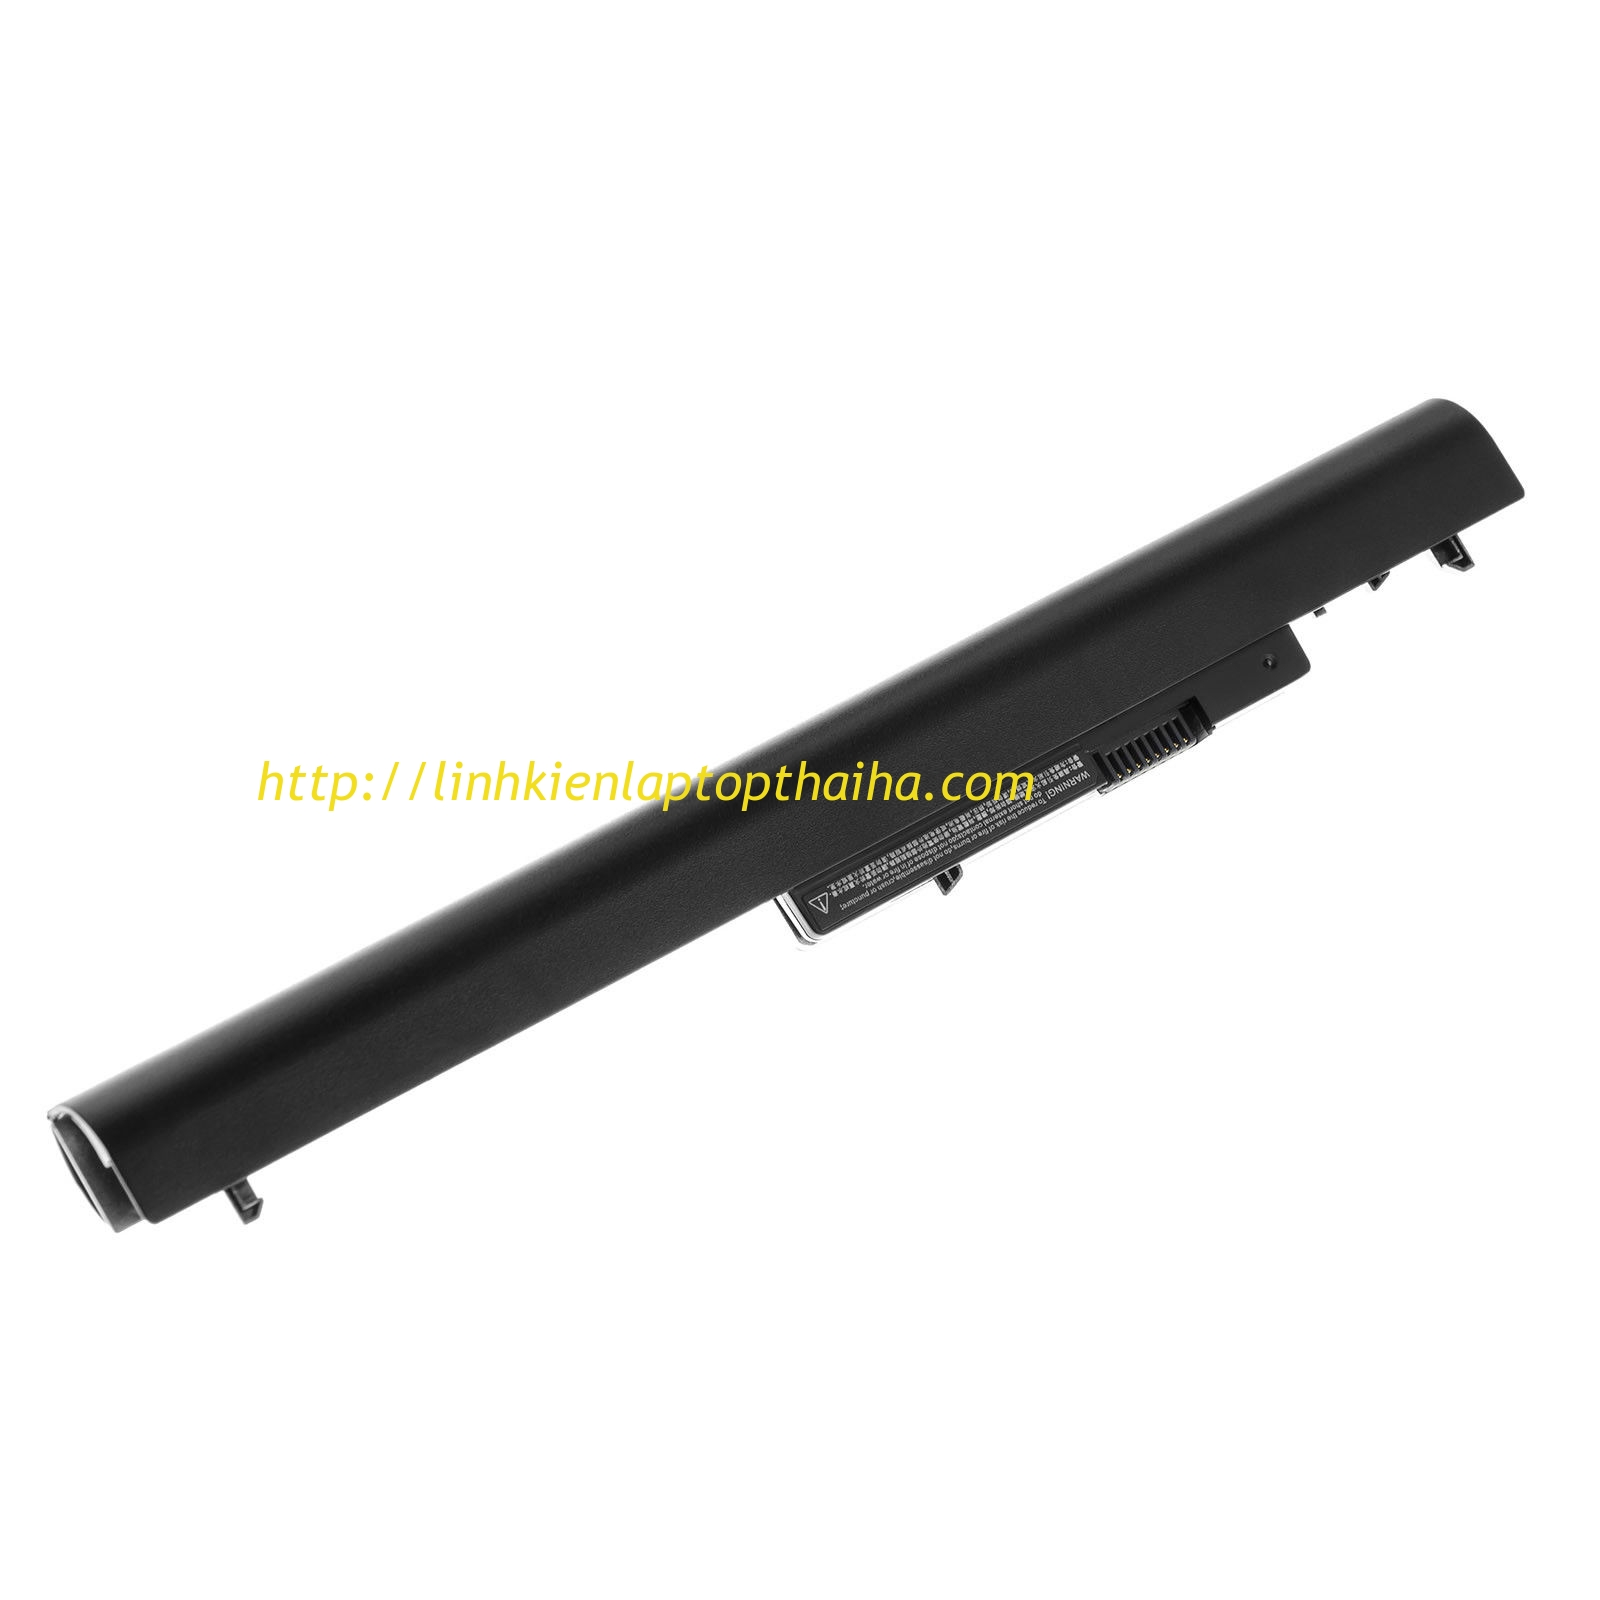 Thay pin laptop Hp PAVILION 14-N000 14-N100 14-N200 La04